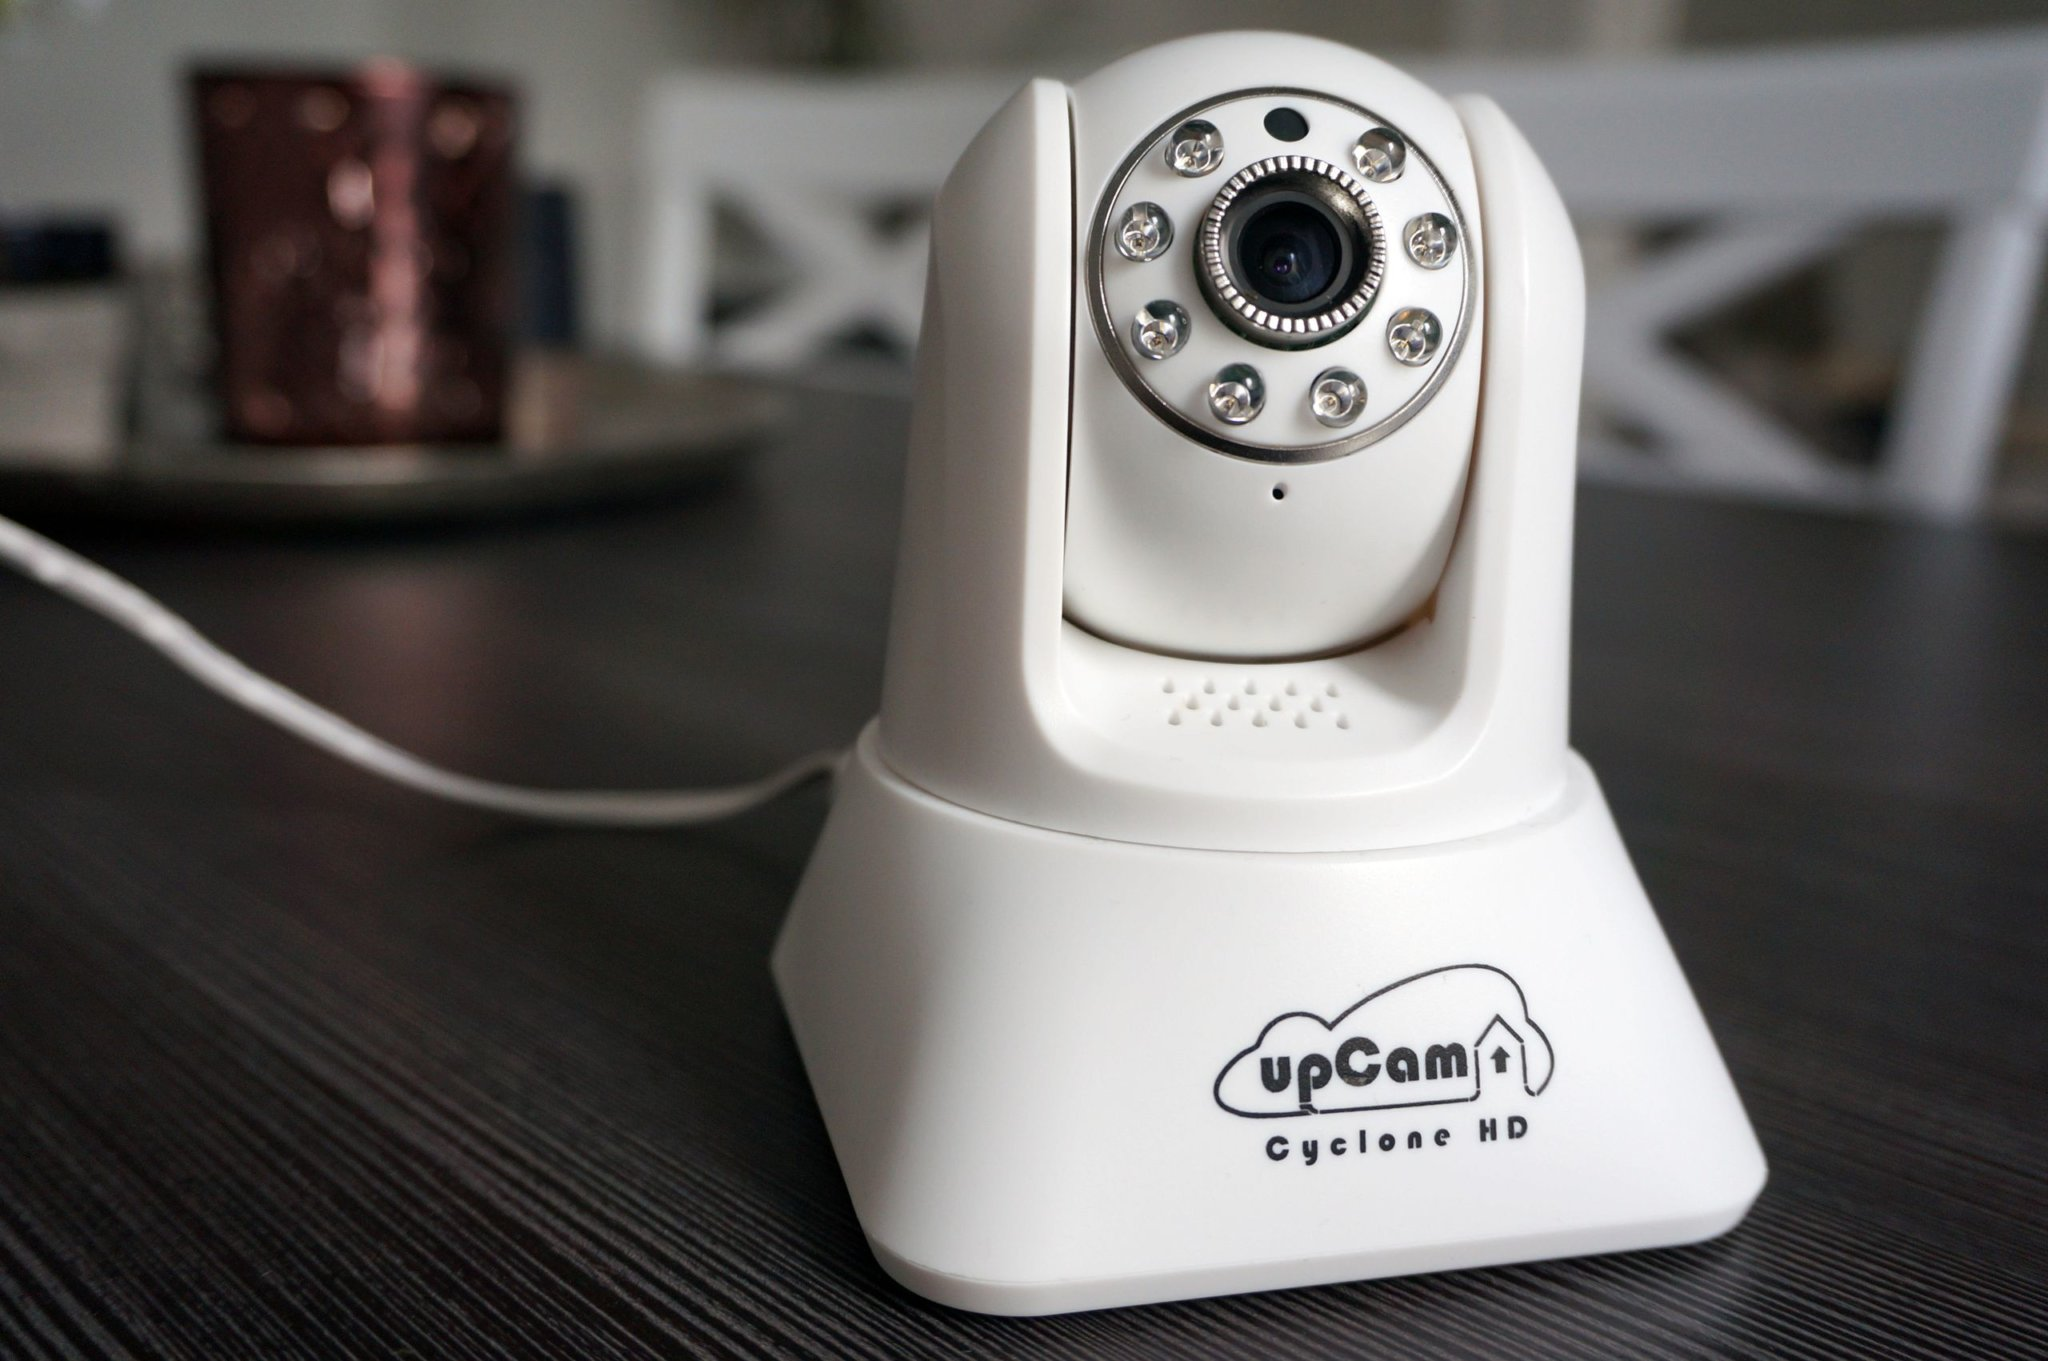 Test / Review – upCam Cyclone HD IP-Kamera